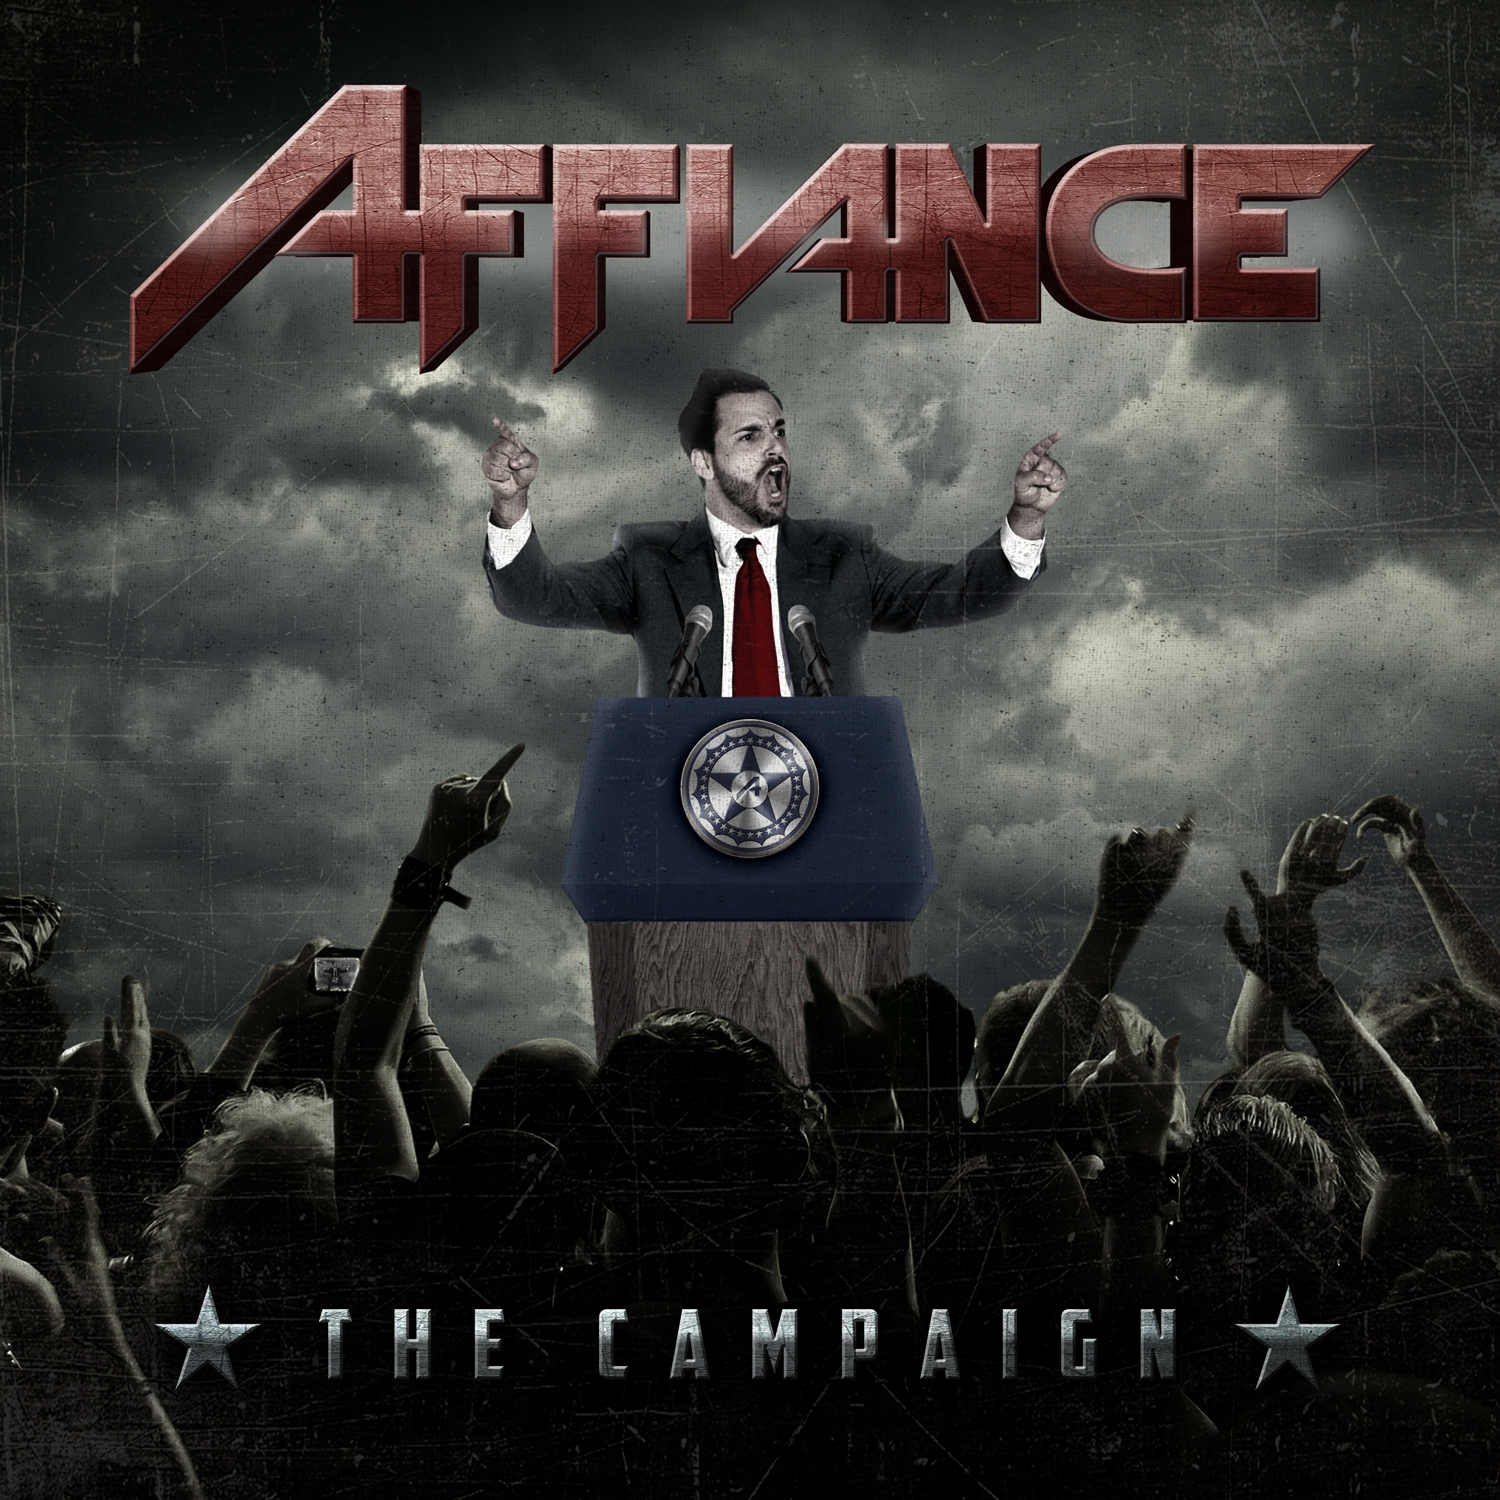 Affiance - The Campaign - Artwork